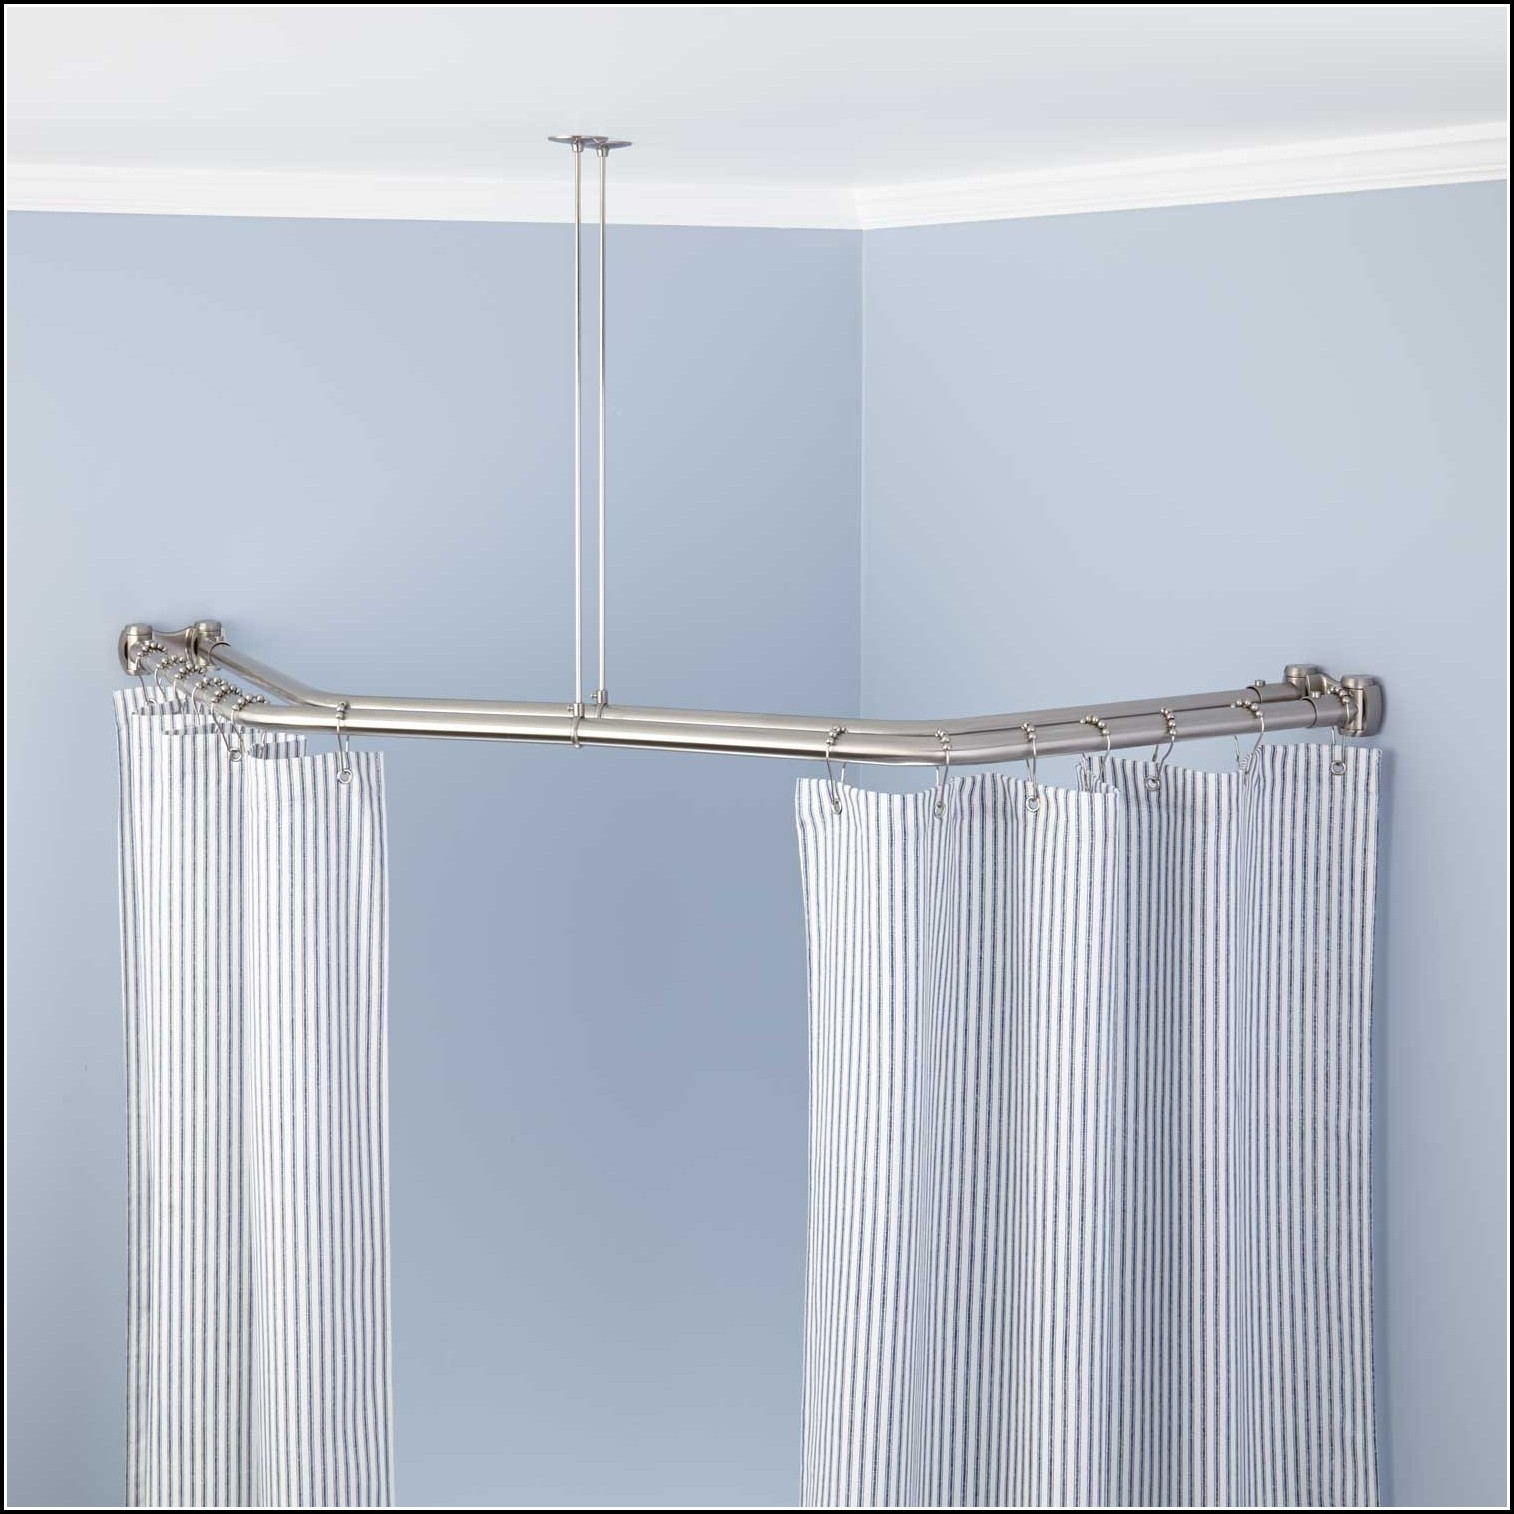 Double Shower Curtain Rod Brushed Nickel Download Page Home Design Ideas Galleries Home